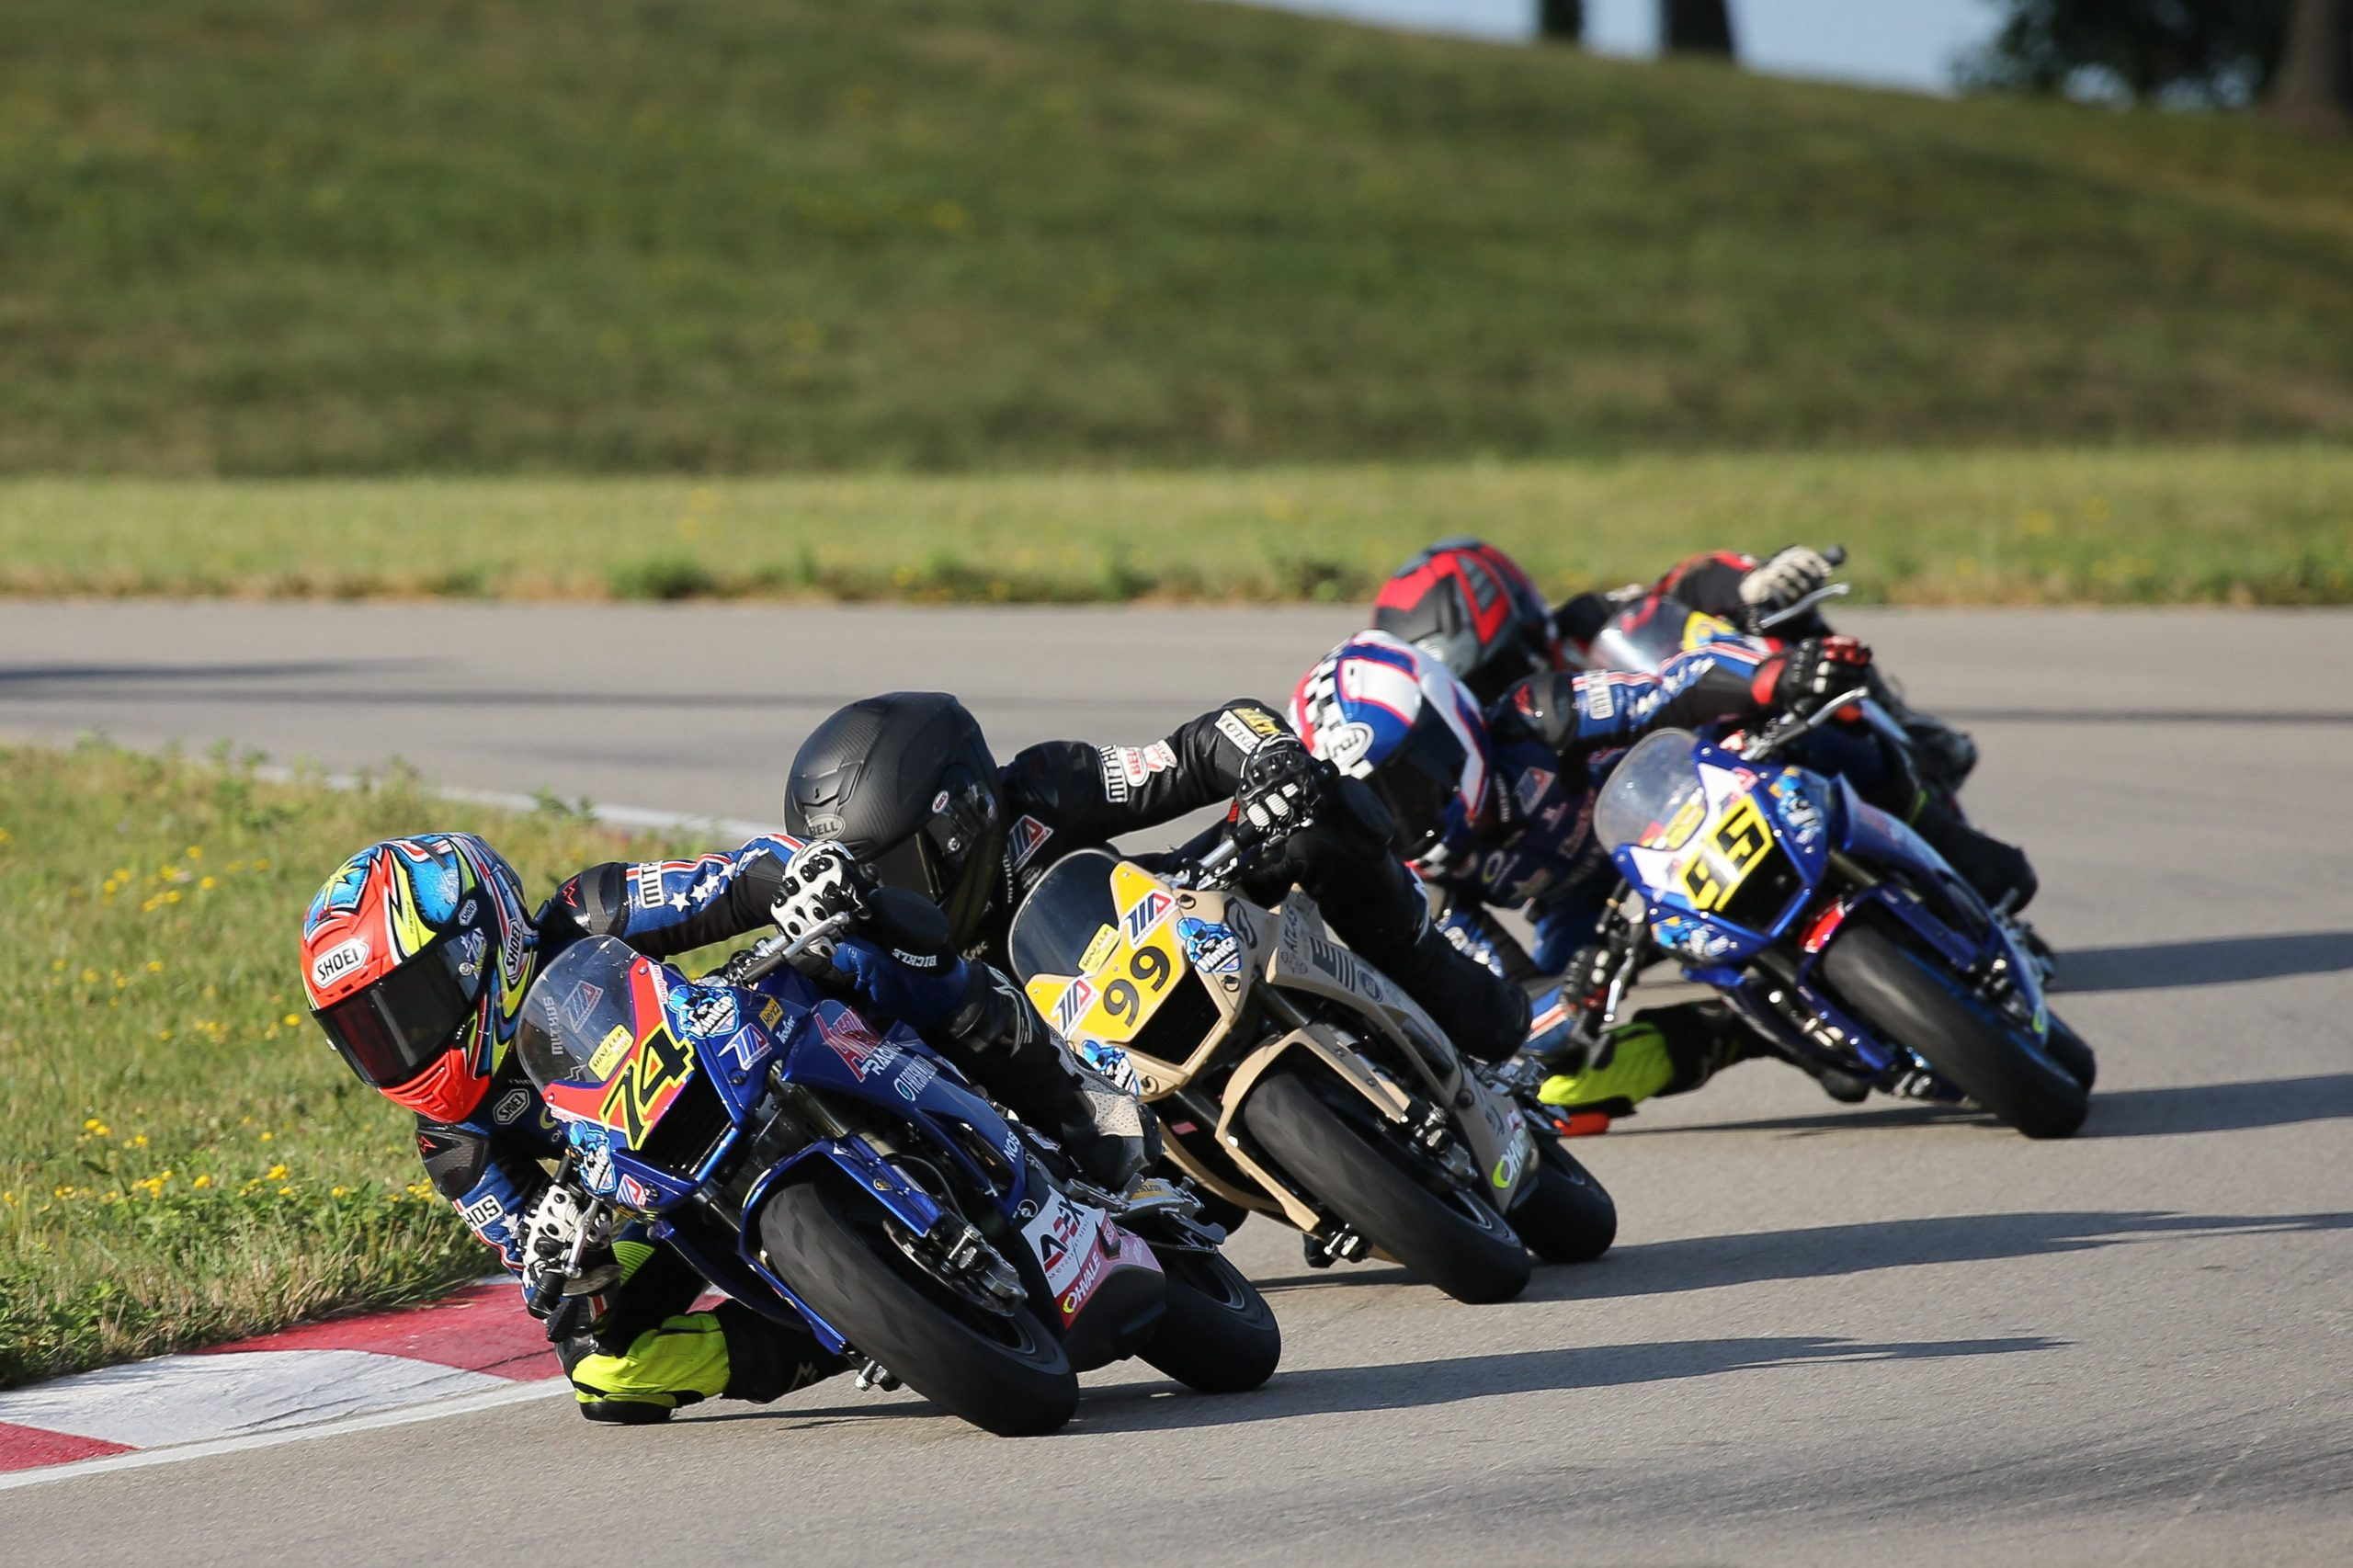 210815 Kensei Matsudaira (74) leads Jesse James Shedden (99) en route to victory in the Mini Cup